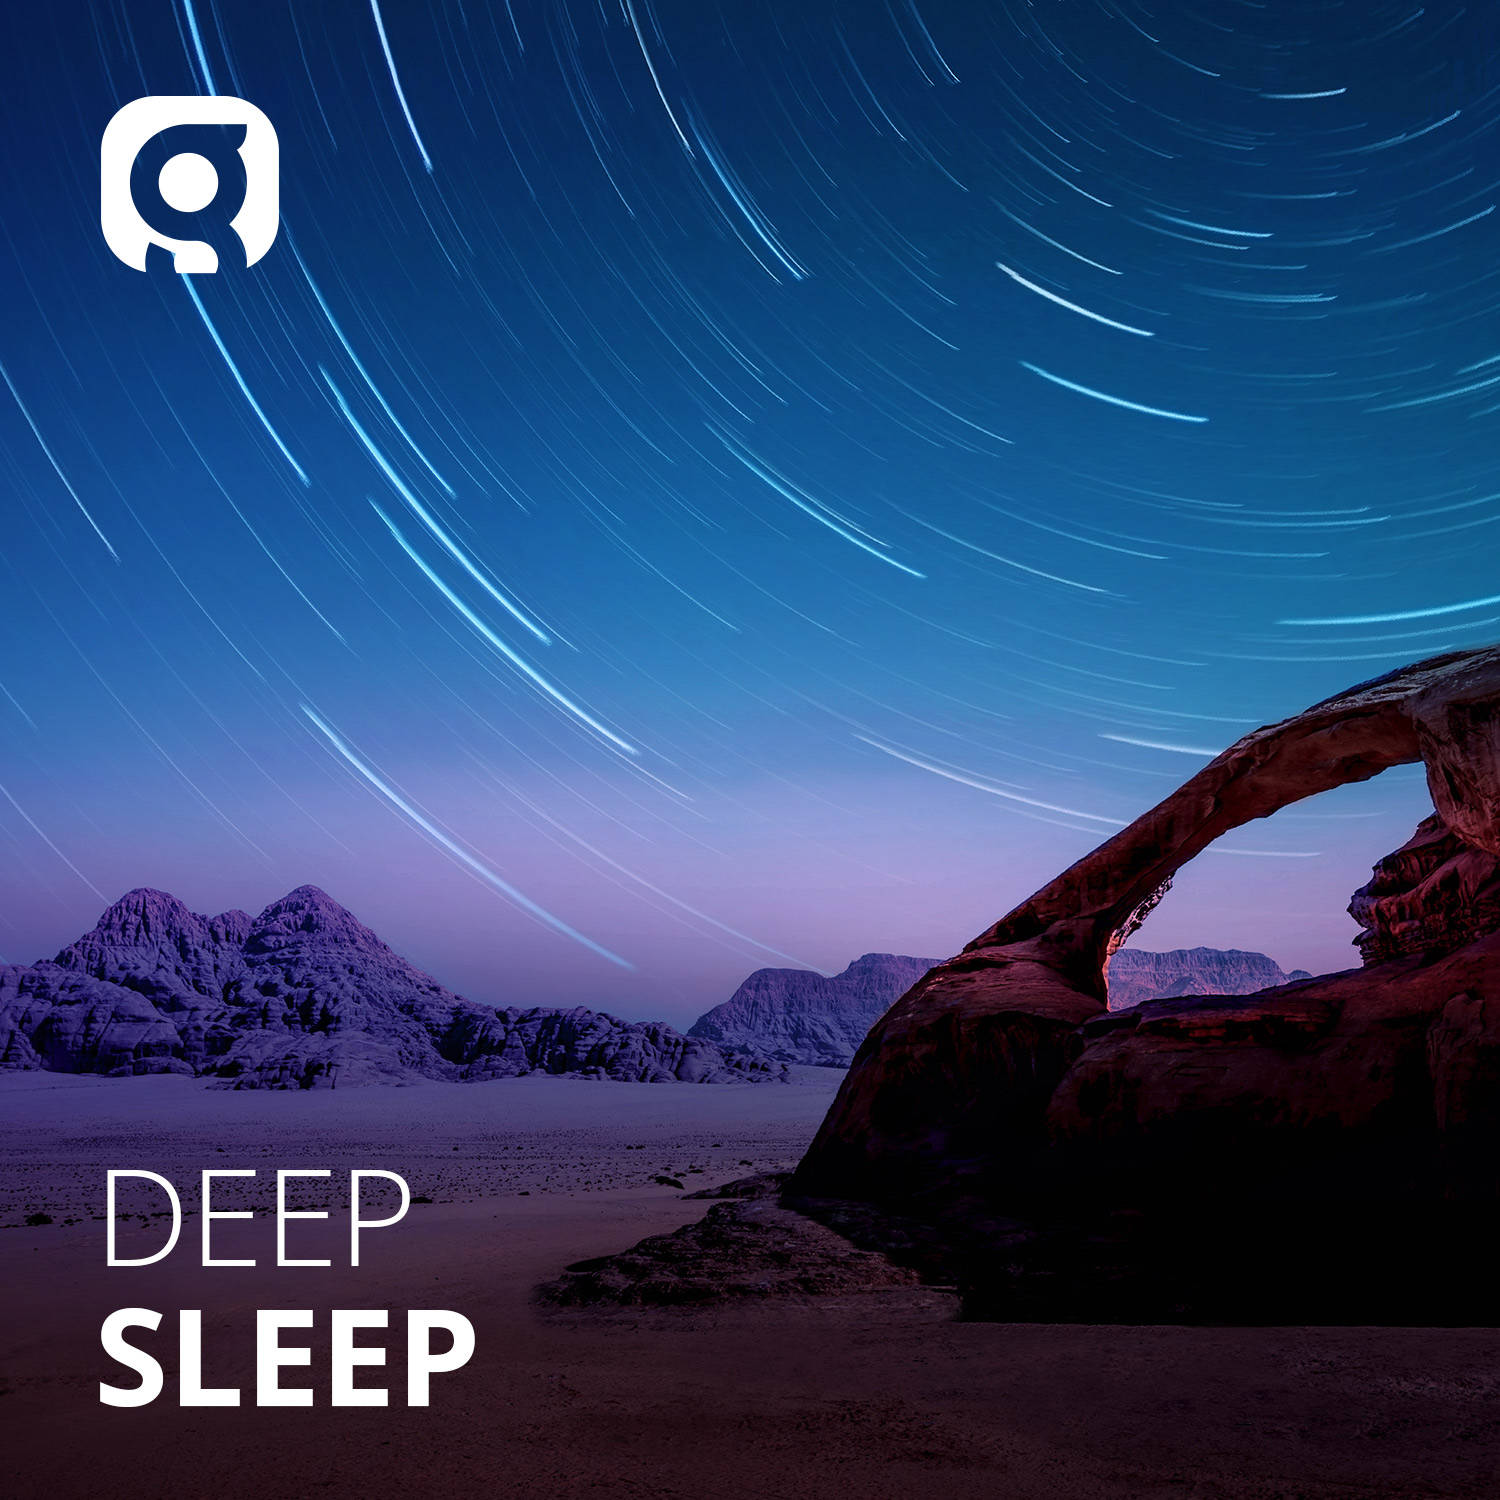 Deep Sleep image